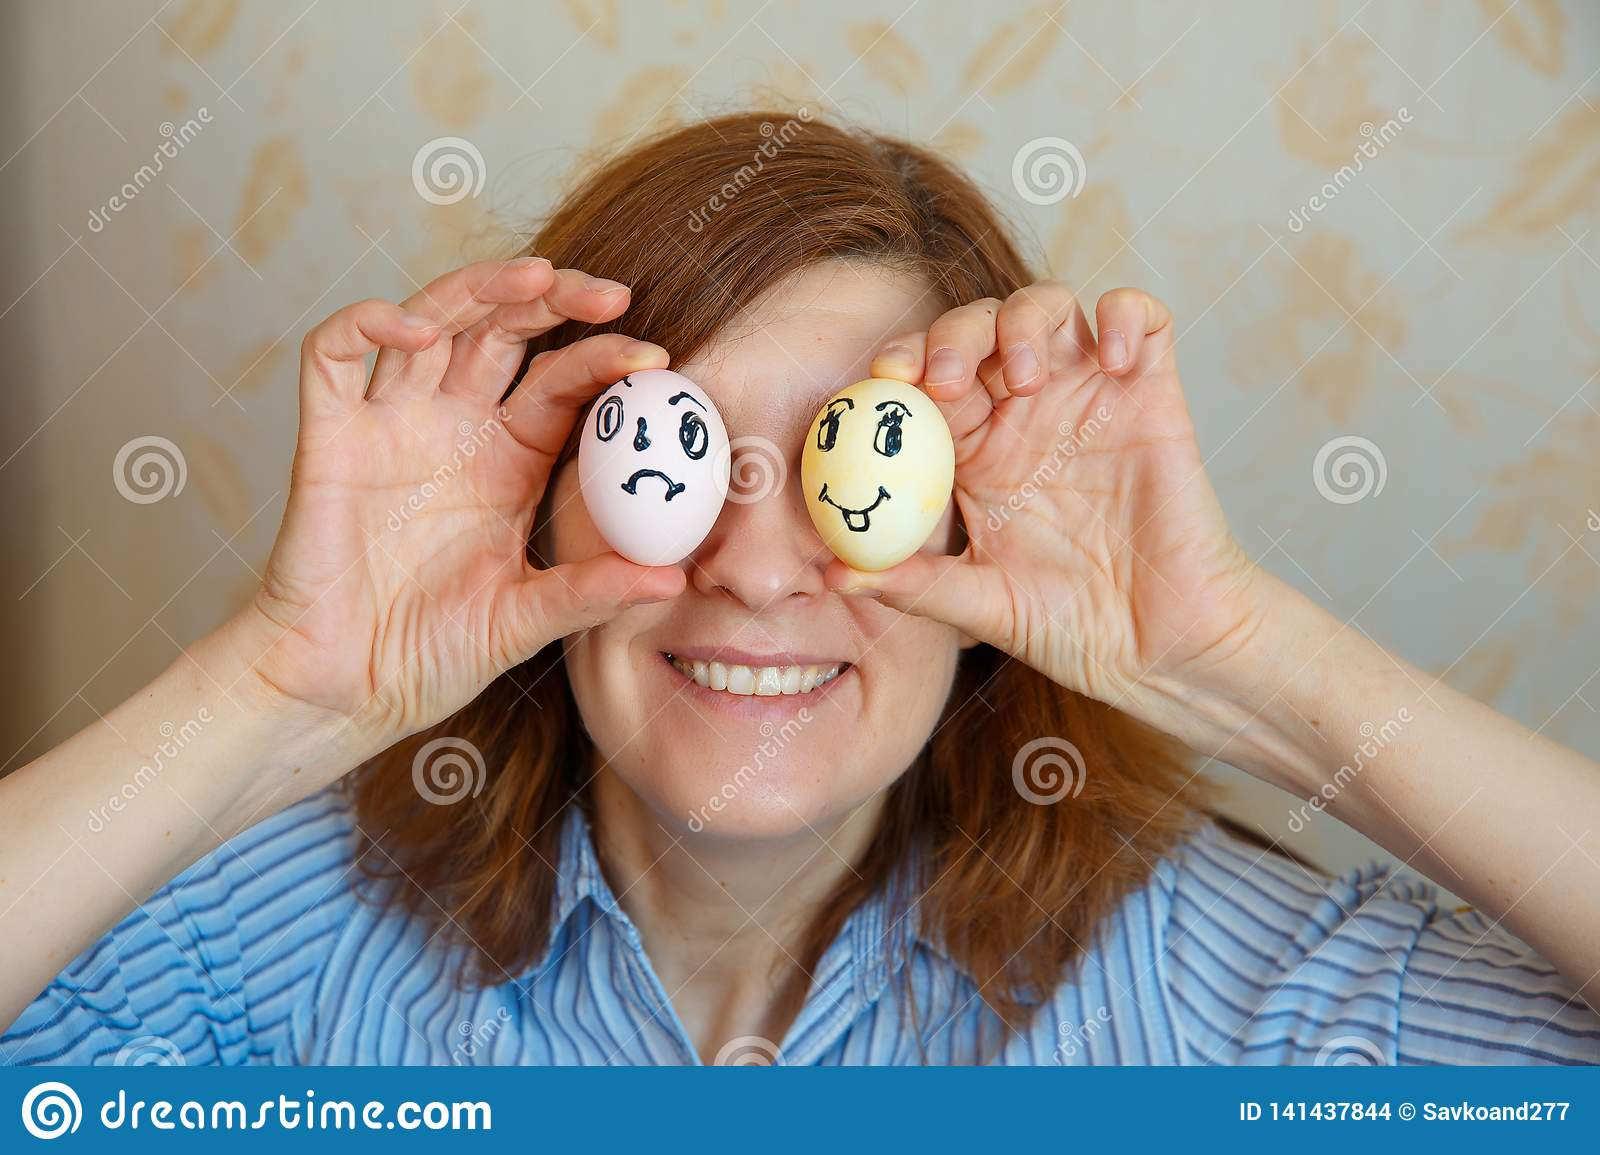 Girl shows painted eggs for Easter with funny faces